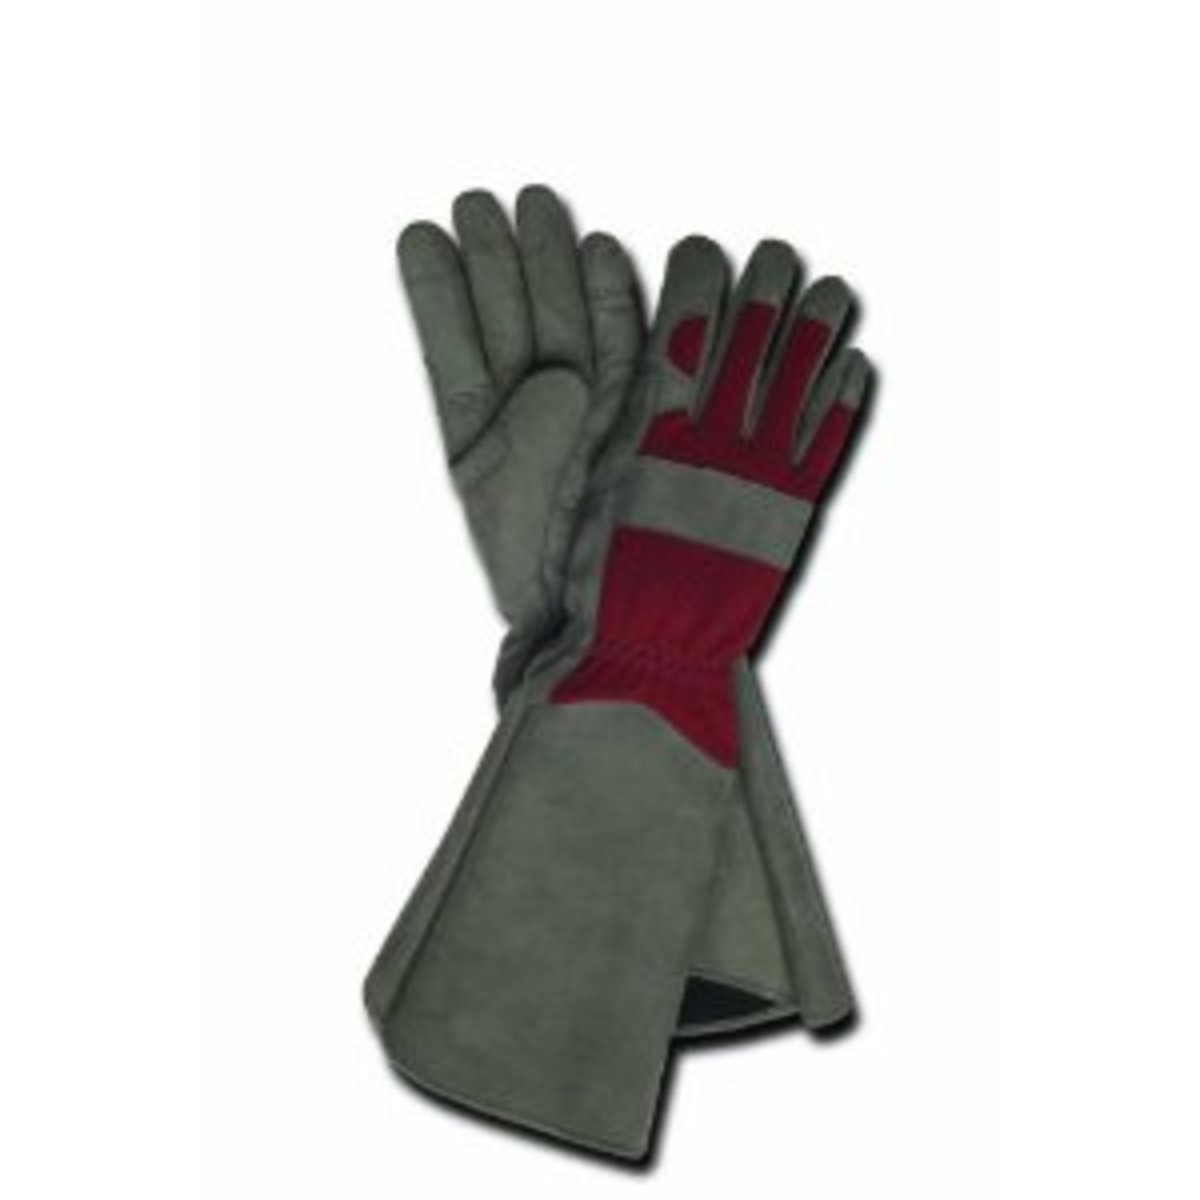 10 best gardening gloves to ensure total hand protection for Gardening gloves amazon